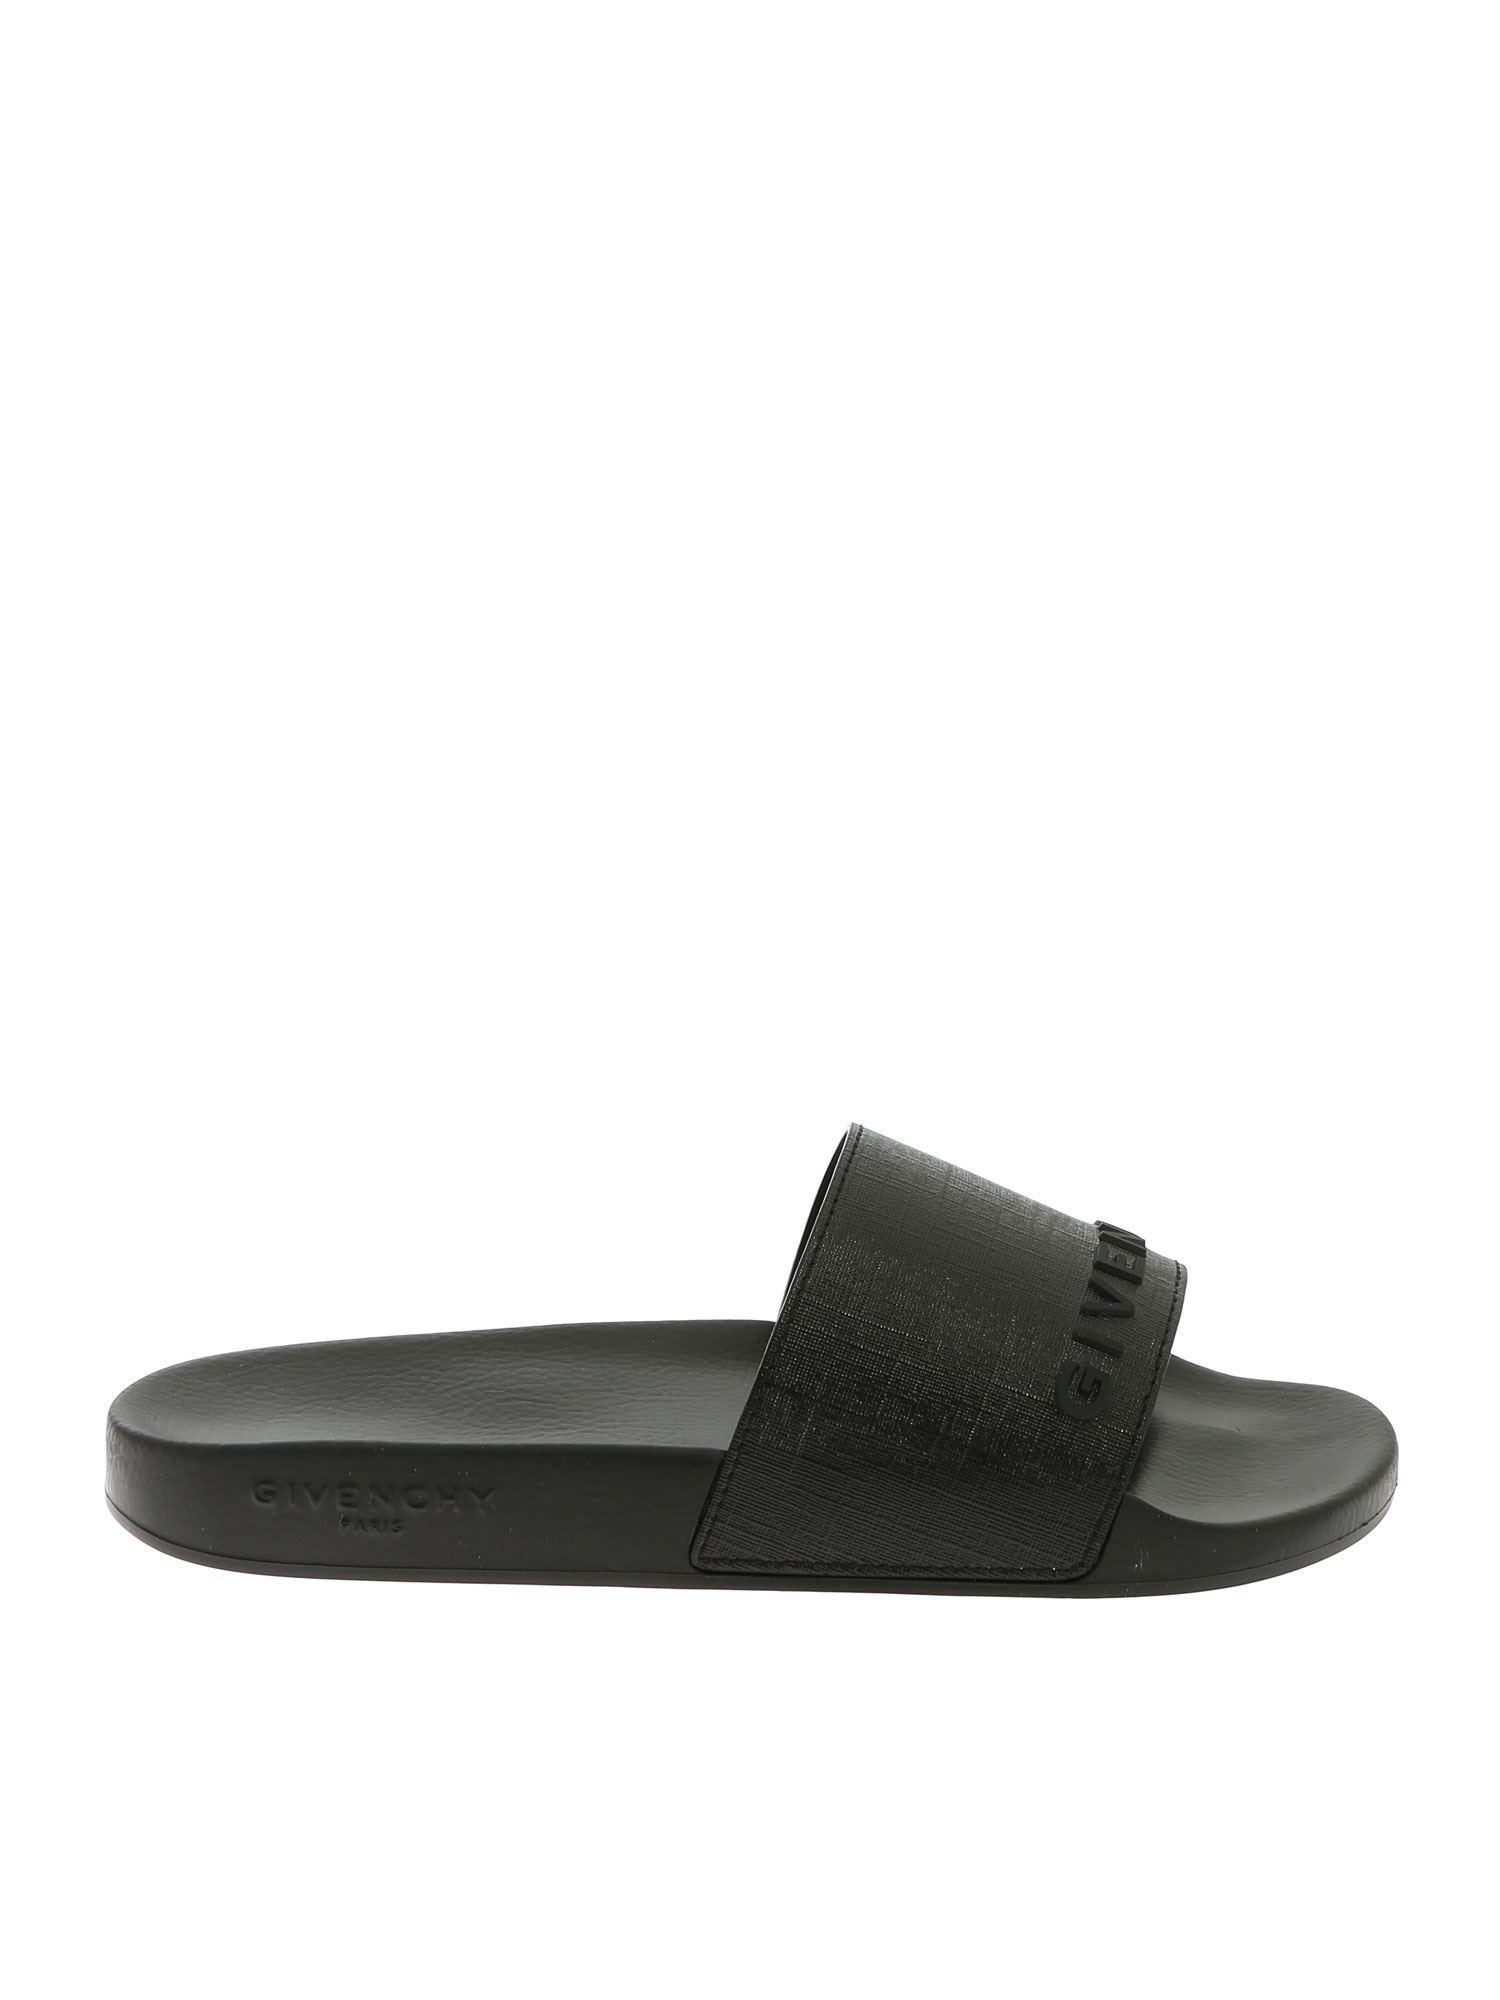 9527c45b4bd30 Givenchy - Black Slides With 3d Logo for Men - Lyst. View fullscreen